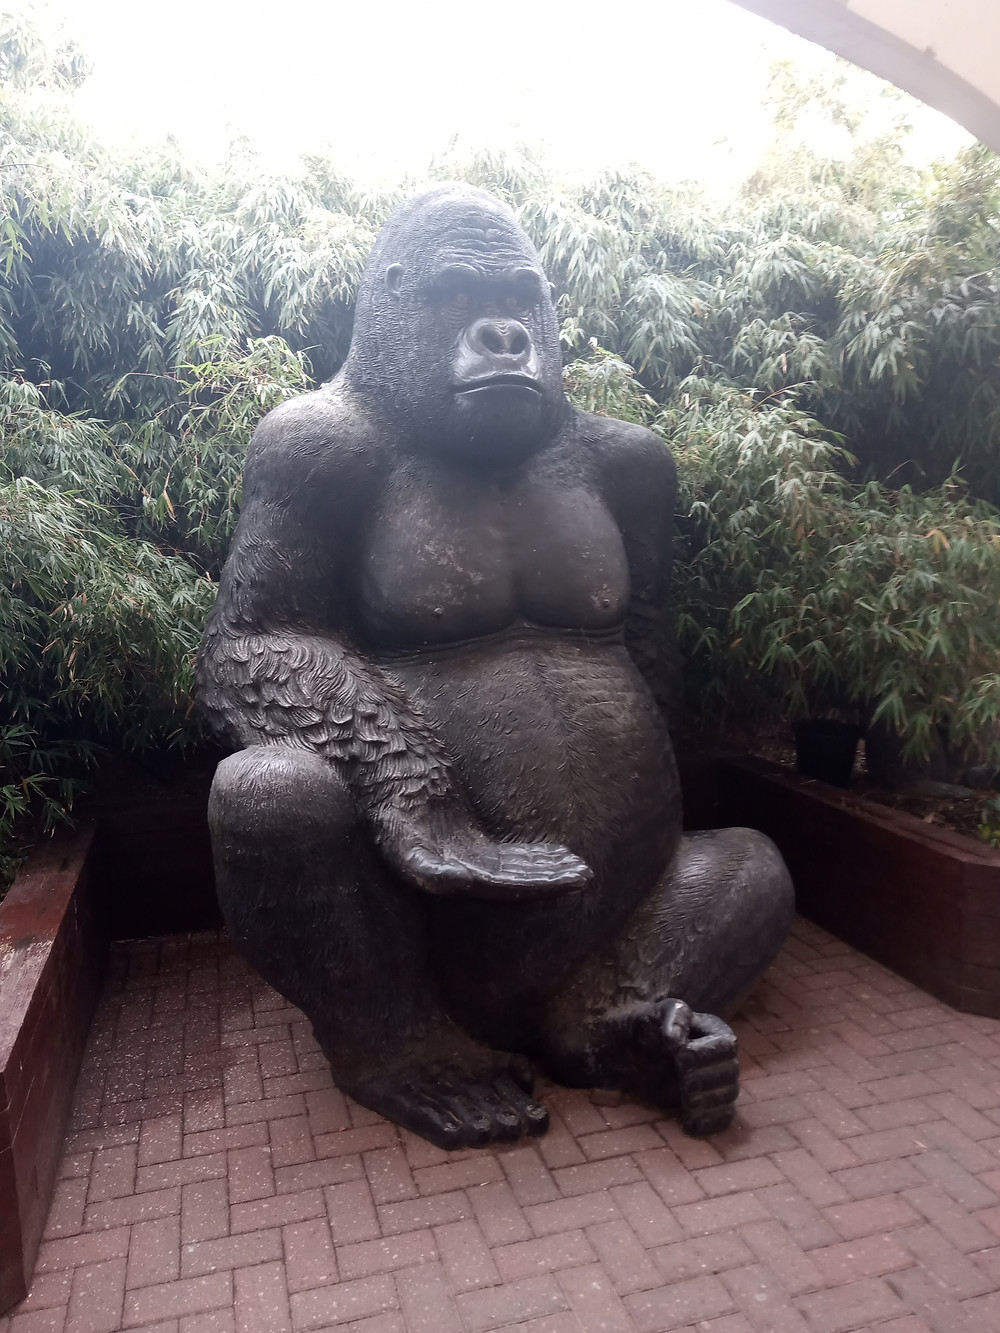 A large statue of a gorilla sits with his hand out amongst trees in a courtyard at Solway Holiday Village, Silloth